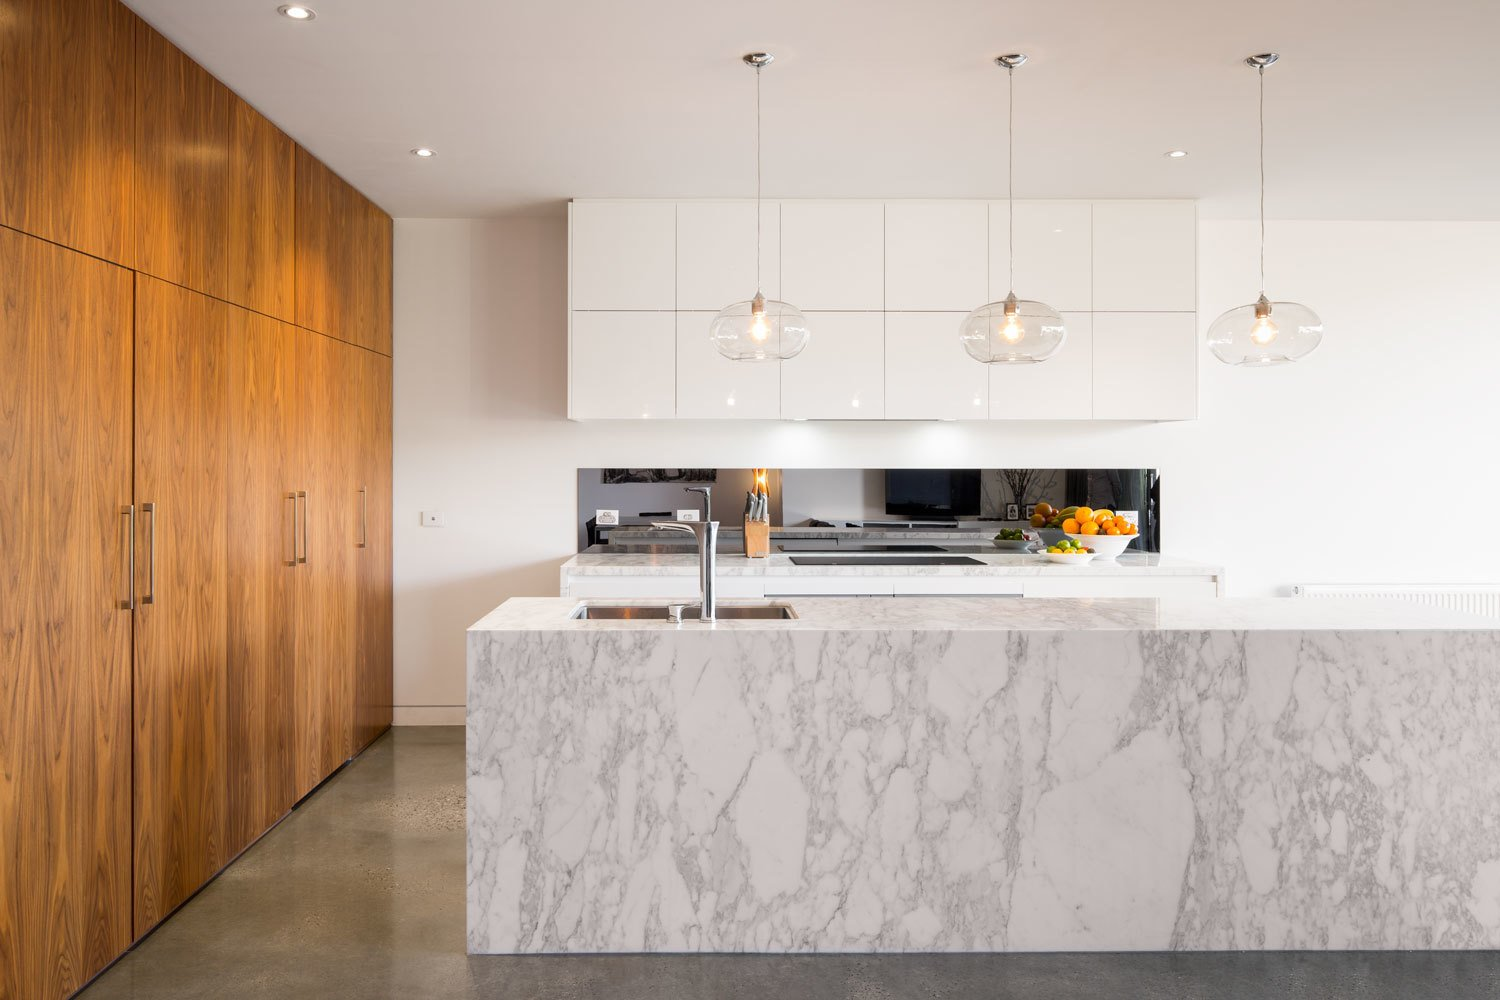 Kitchen, Marble Counter, White Cabinet, Concrete Floor, Wood Cabinet, Pendant Lighting, Undermount Sink, Recessed Lighting, and Cooktops The entire living and dining space features tough polished concrete floors. The architects intentionally contrasted the darker concrete and veneered pantry against the neutral white walls and marble. This color play runs through the renovated areas.  Photo 3 of 7 in Renovation: A Breezy Modern Addition Opens Up a Historic Melbourne Home from A Breezy Modern Addition Opens Up a Historic Melbourne Home